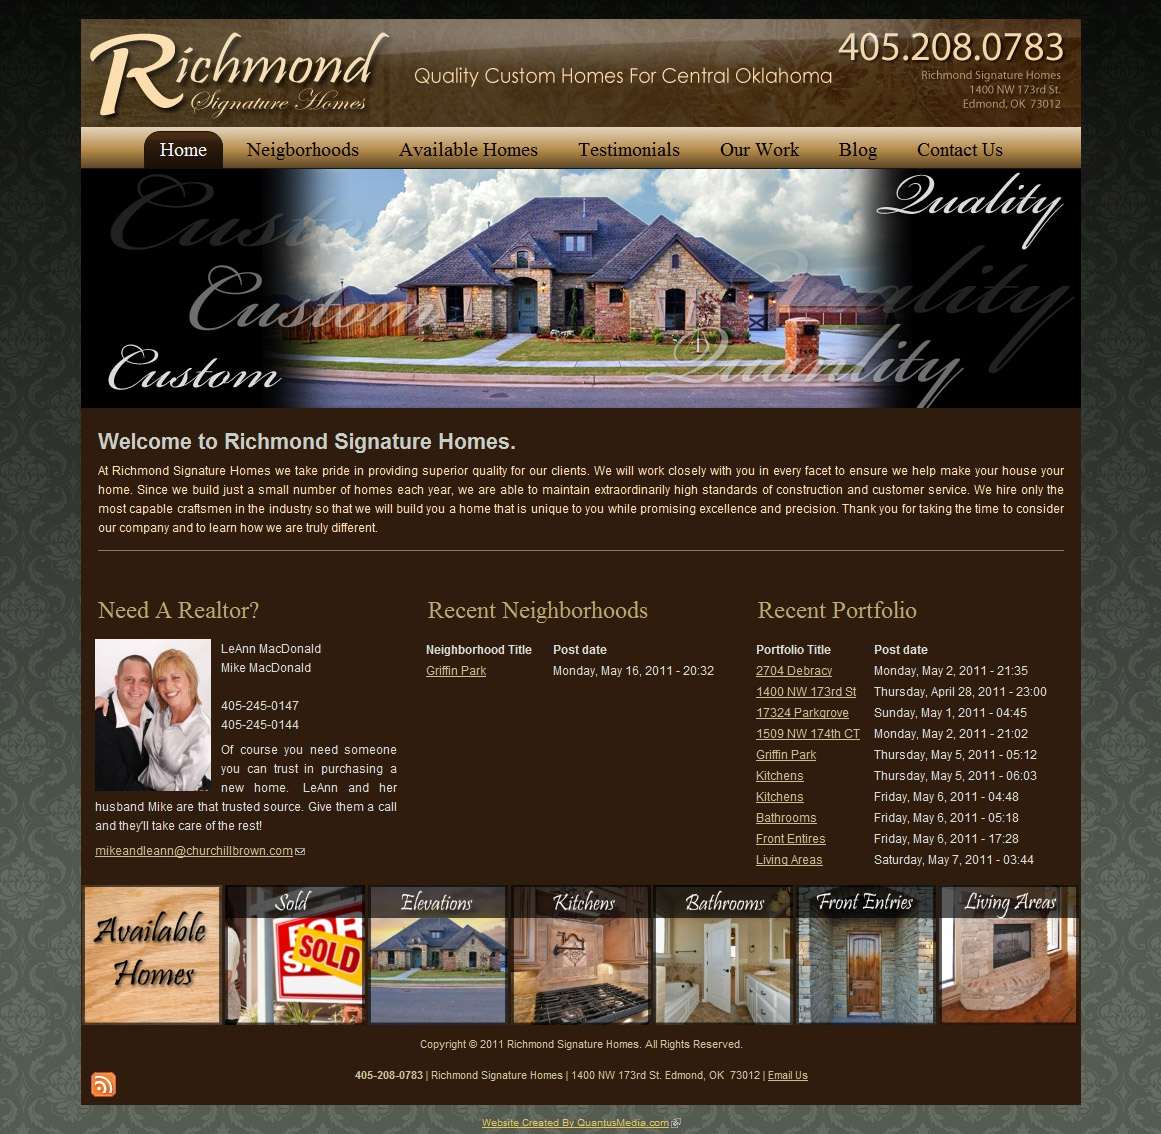 Oklahoma Web Design Oklahoma Drupal Development: richmond signature homes